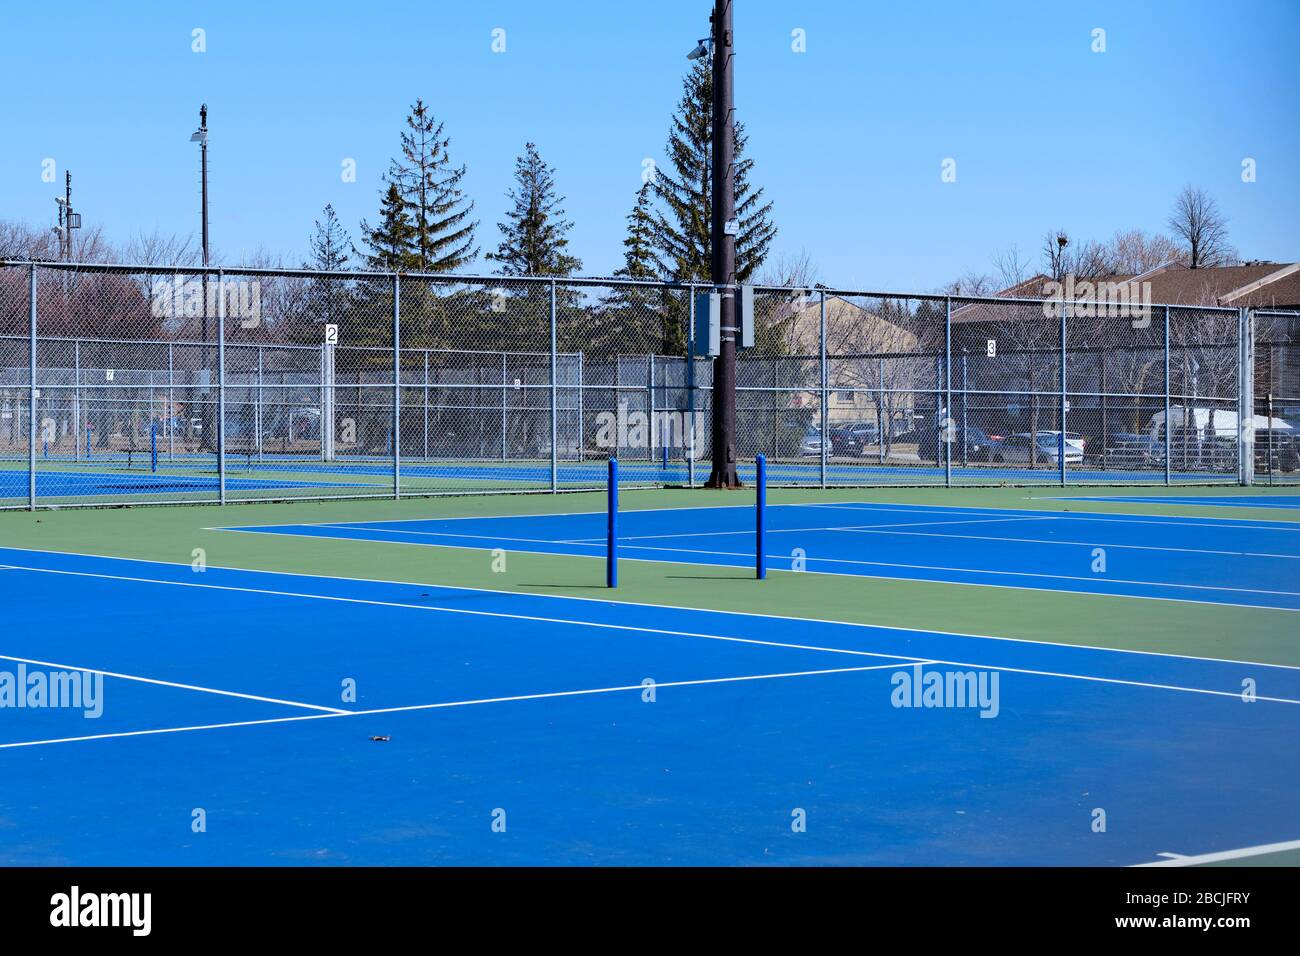 empty-tennis-court-on-sunny-spring-day-closed-due-to-covid19-epidemic-in-montreal-canada-2BCJFRY.jpg